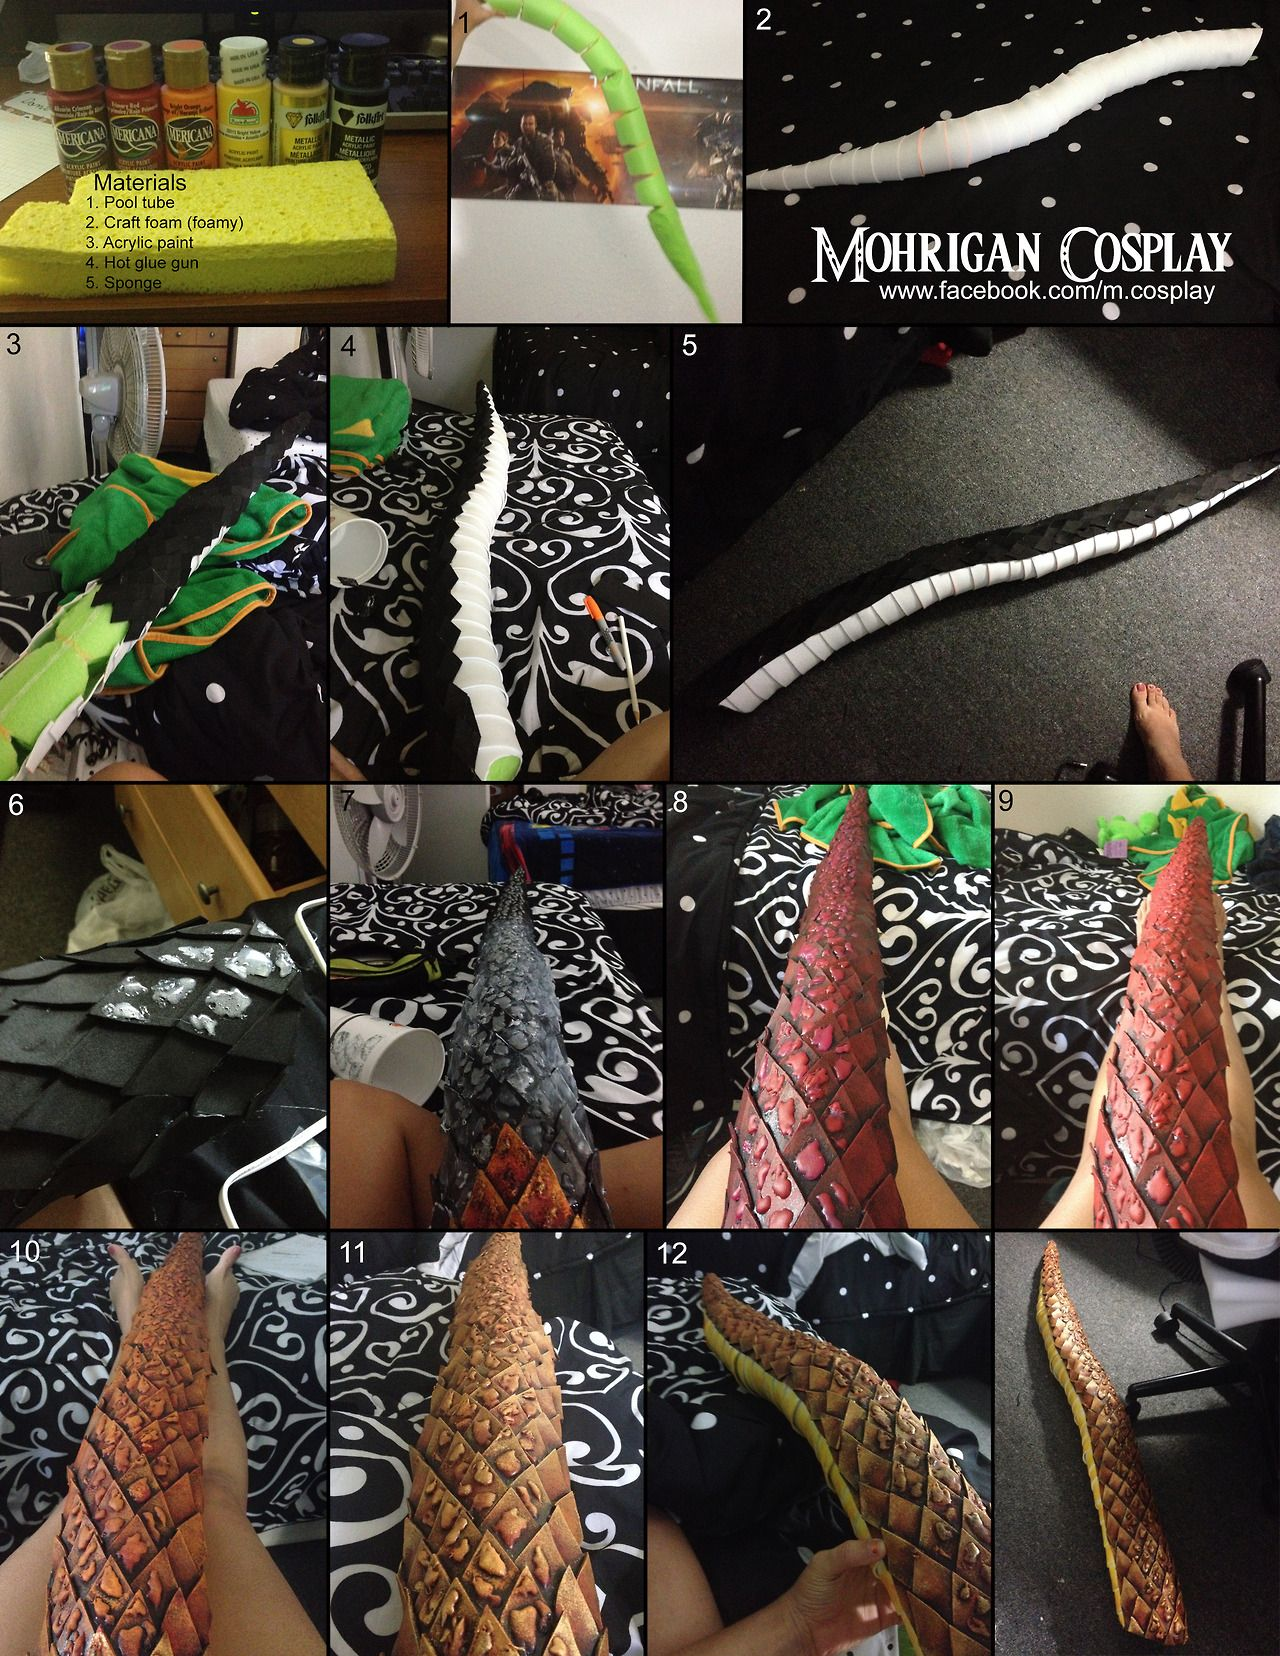 Mohrigan Cosplay Tutorials €� How To Make A Dragon Tail *click To Zoom In*